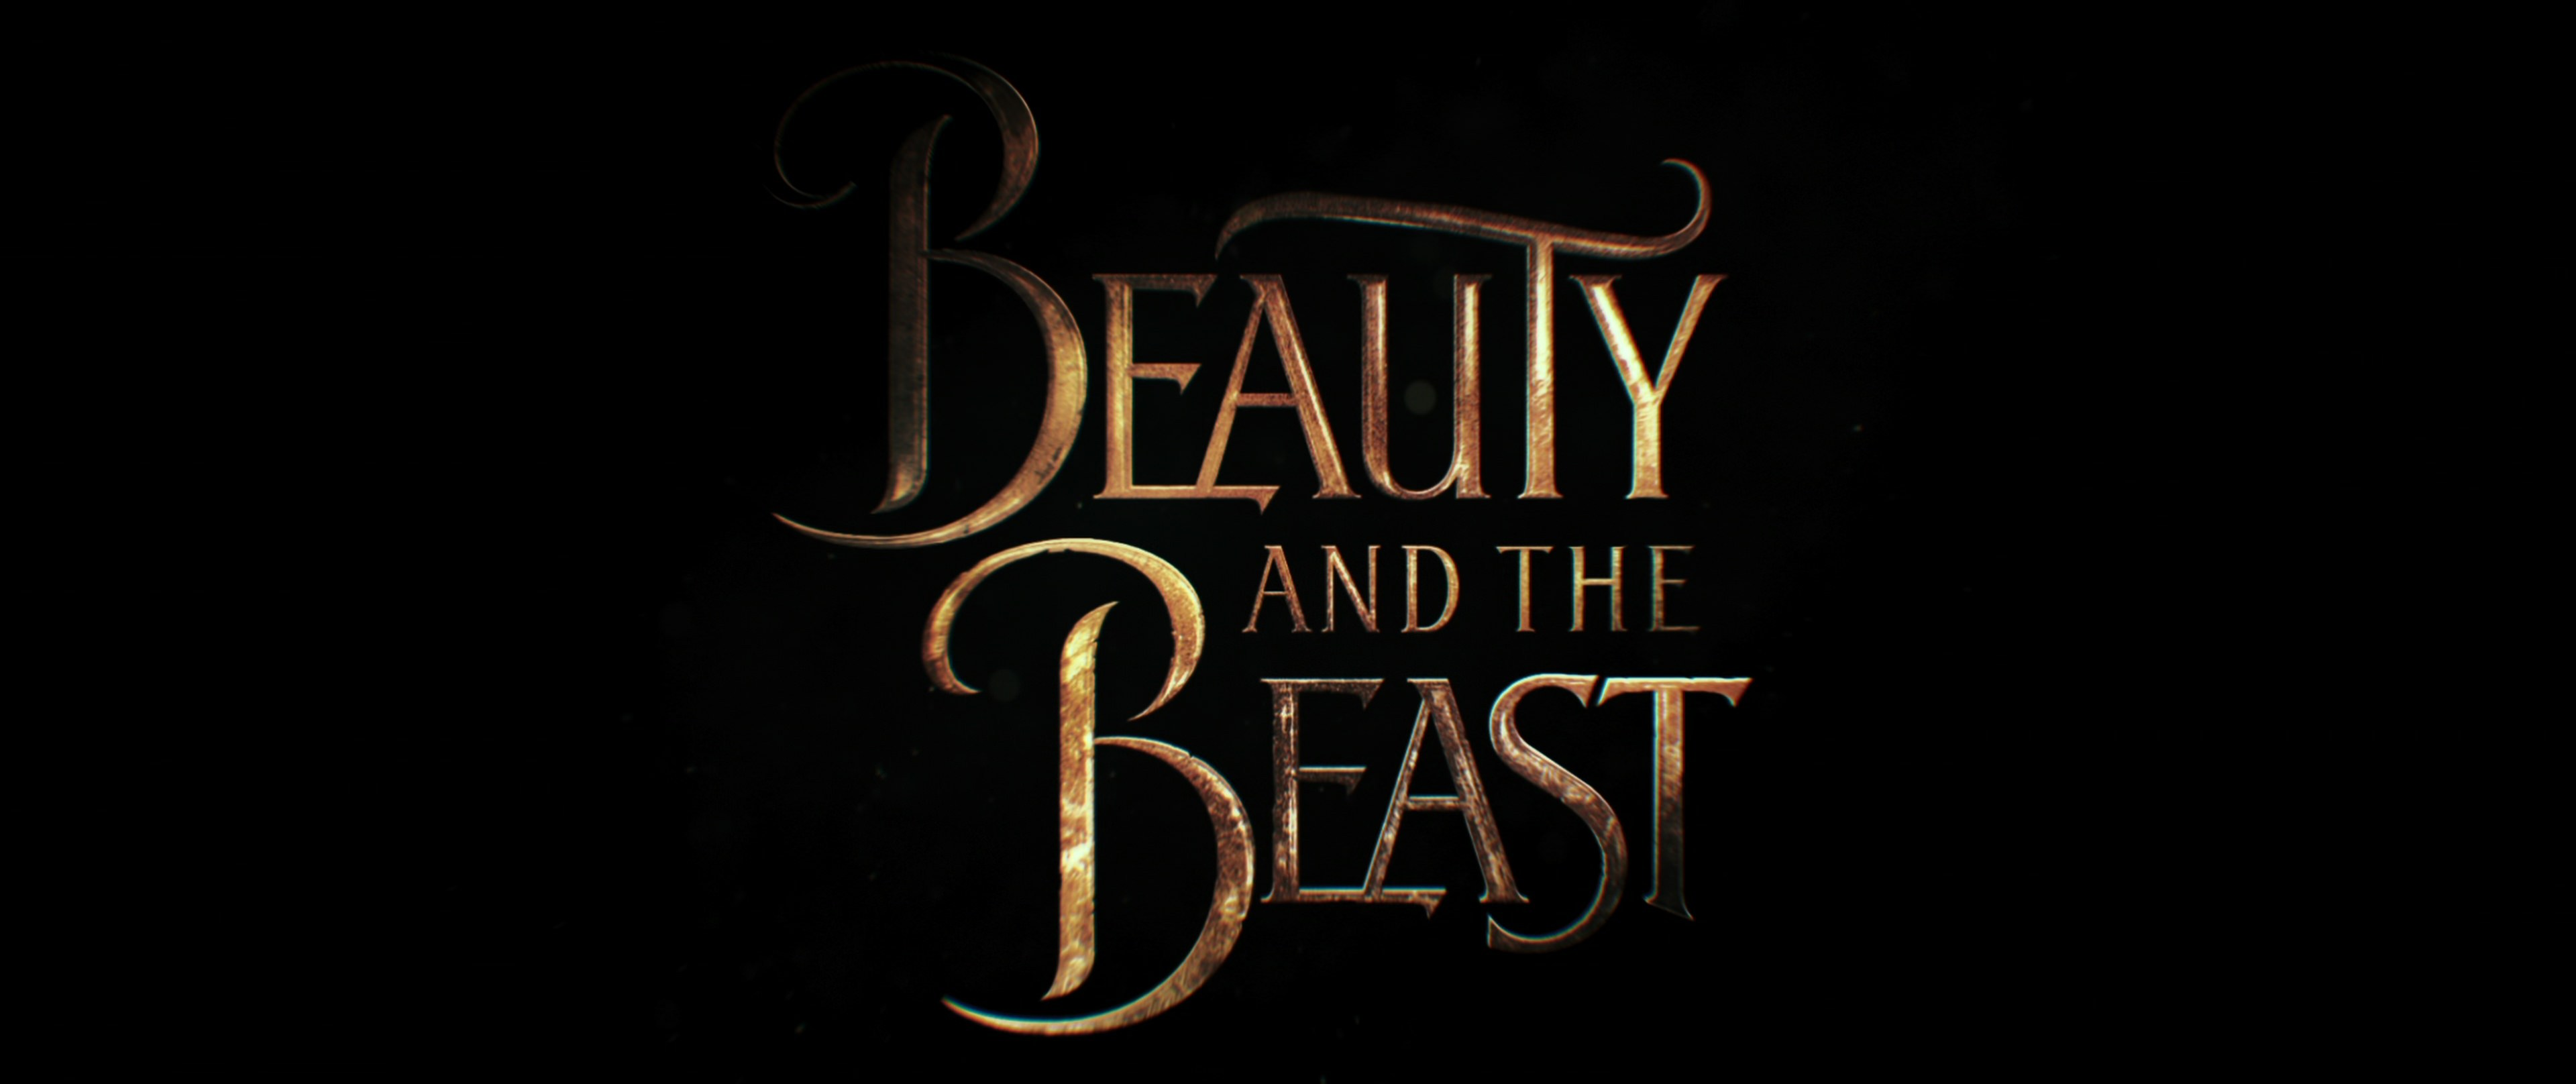 beauty and the beast 2017 film and television wikia